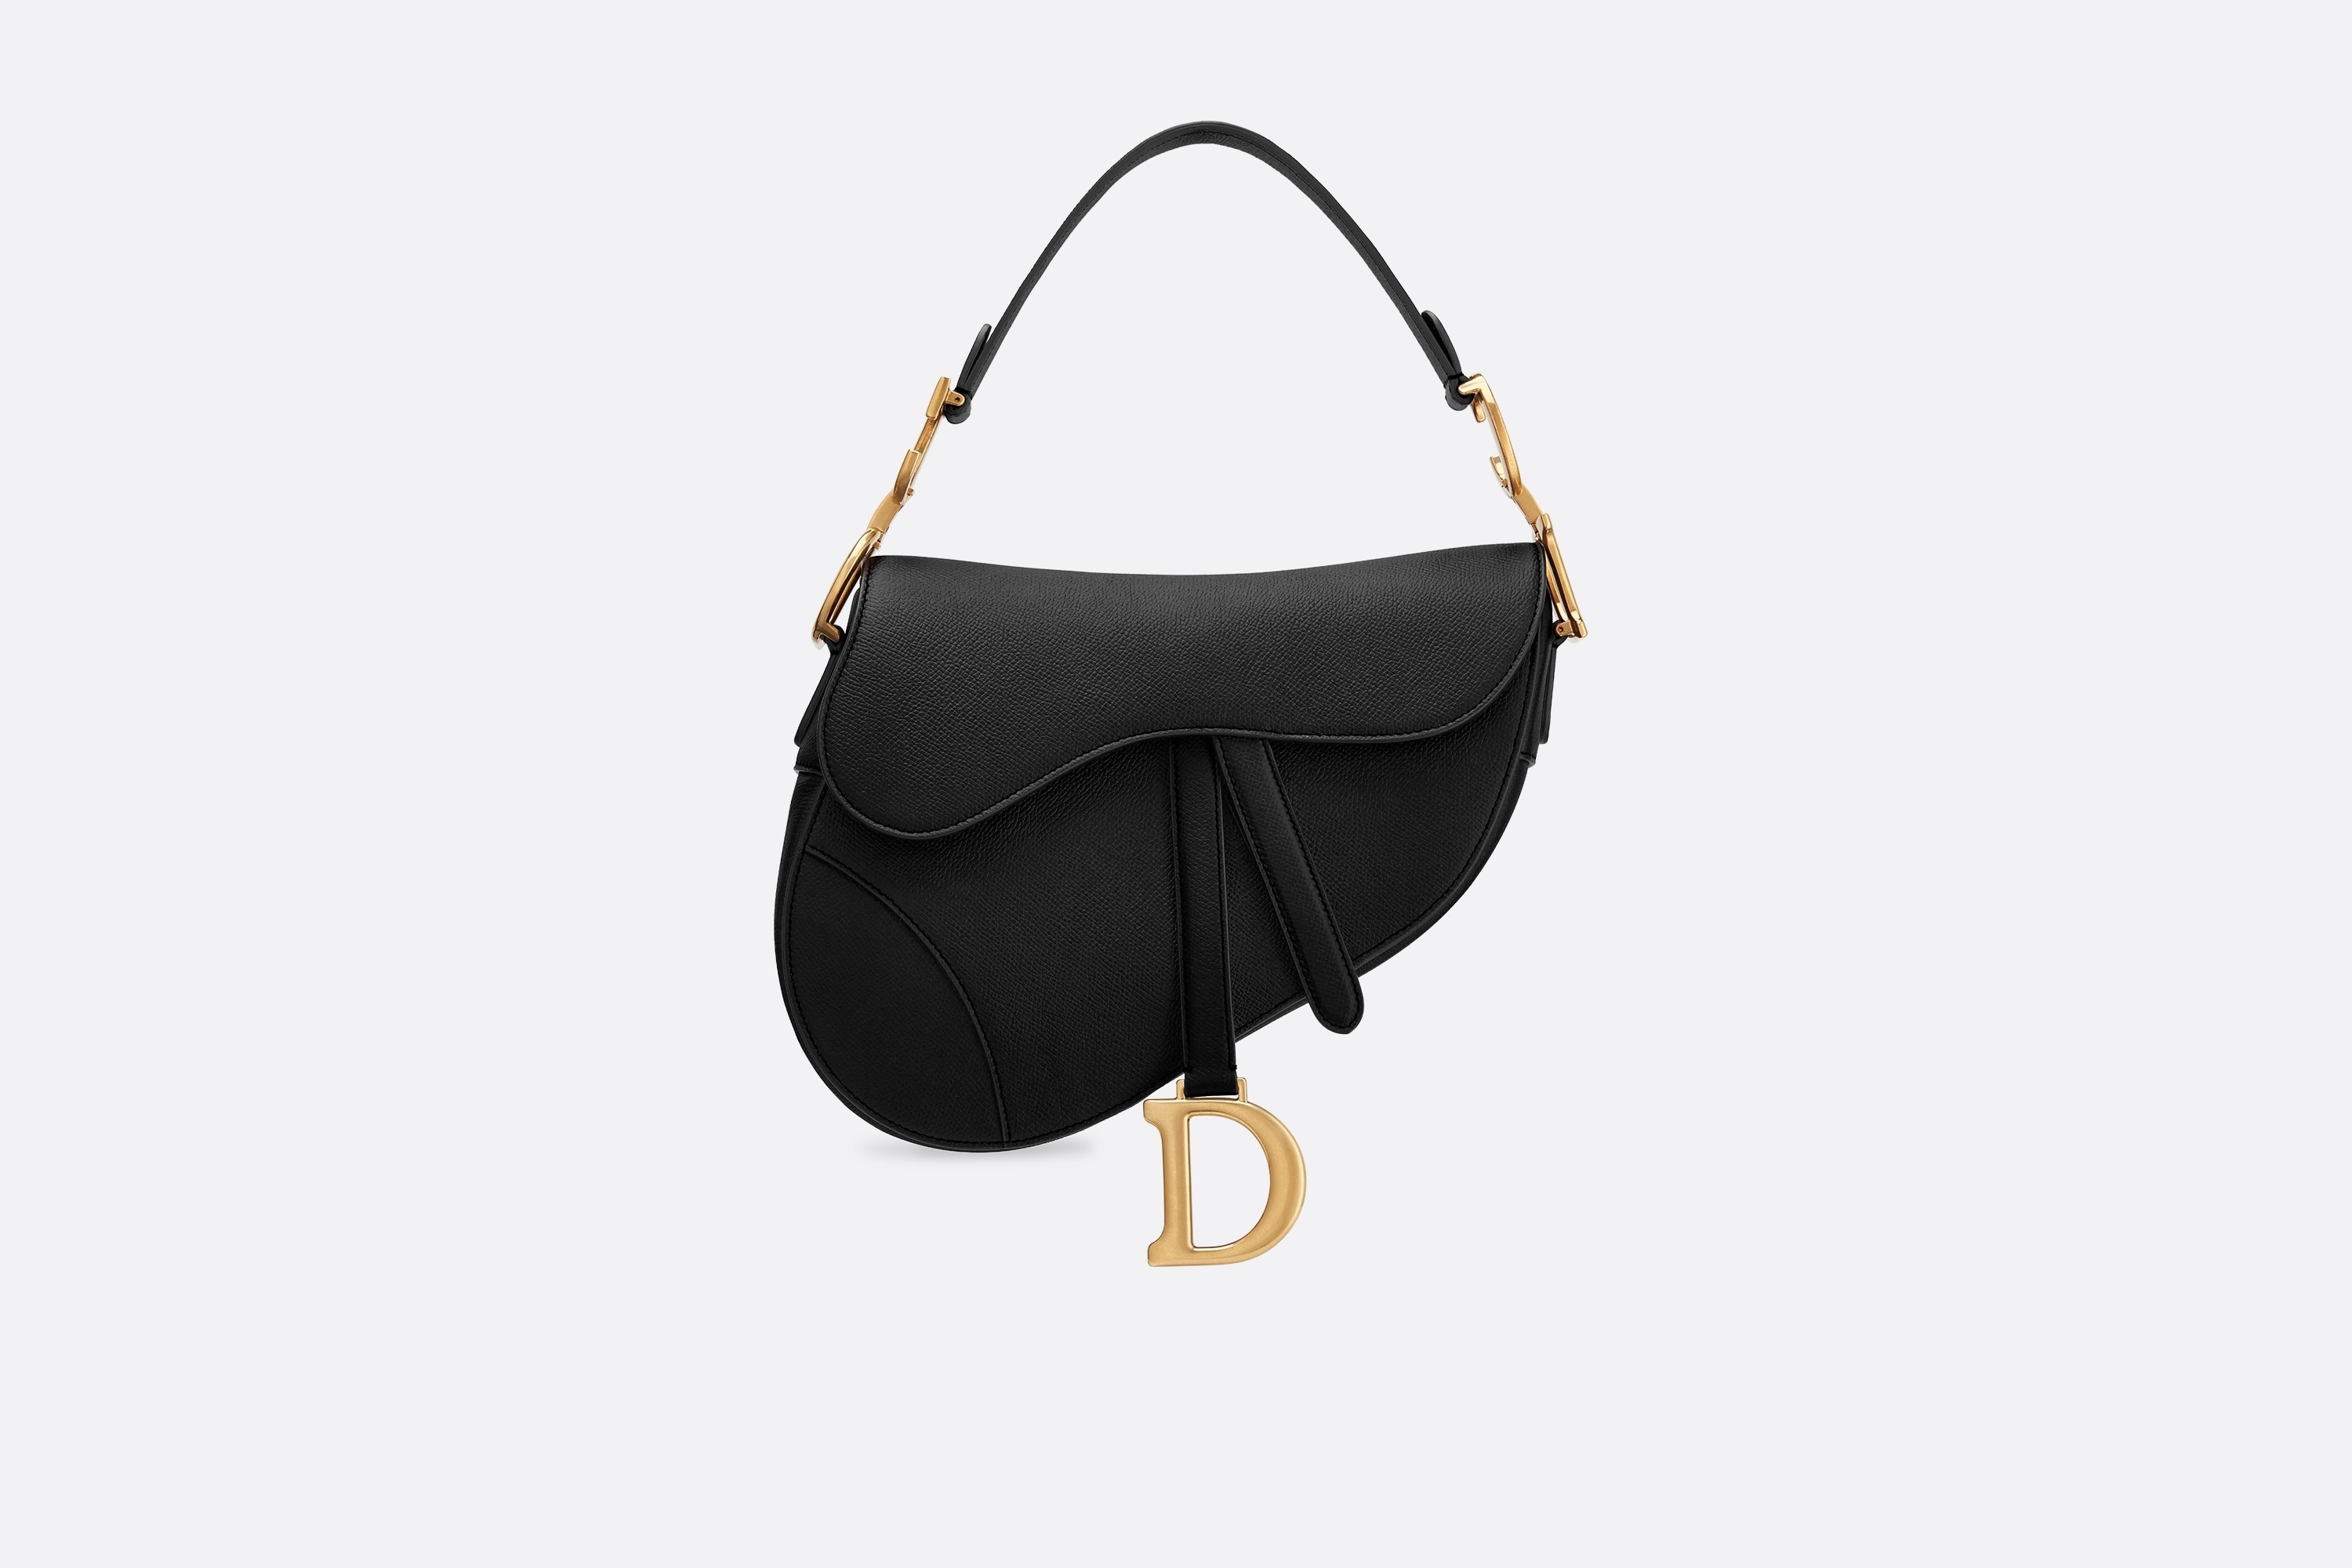 Saddle Bag Black Grained Calfskin - Bags - Women's Fashion | DIOR